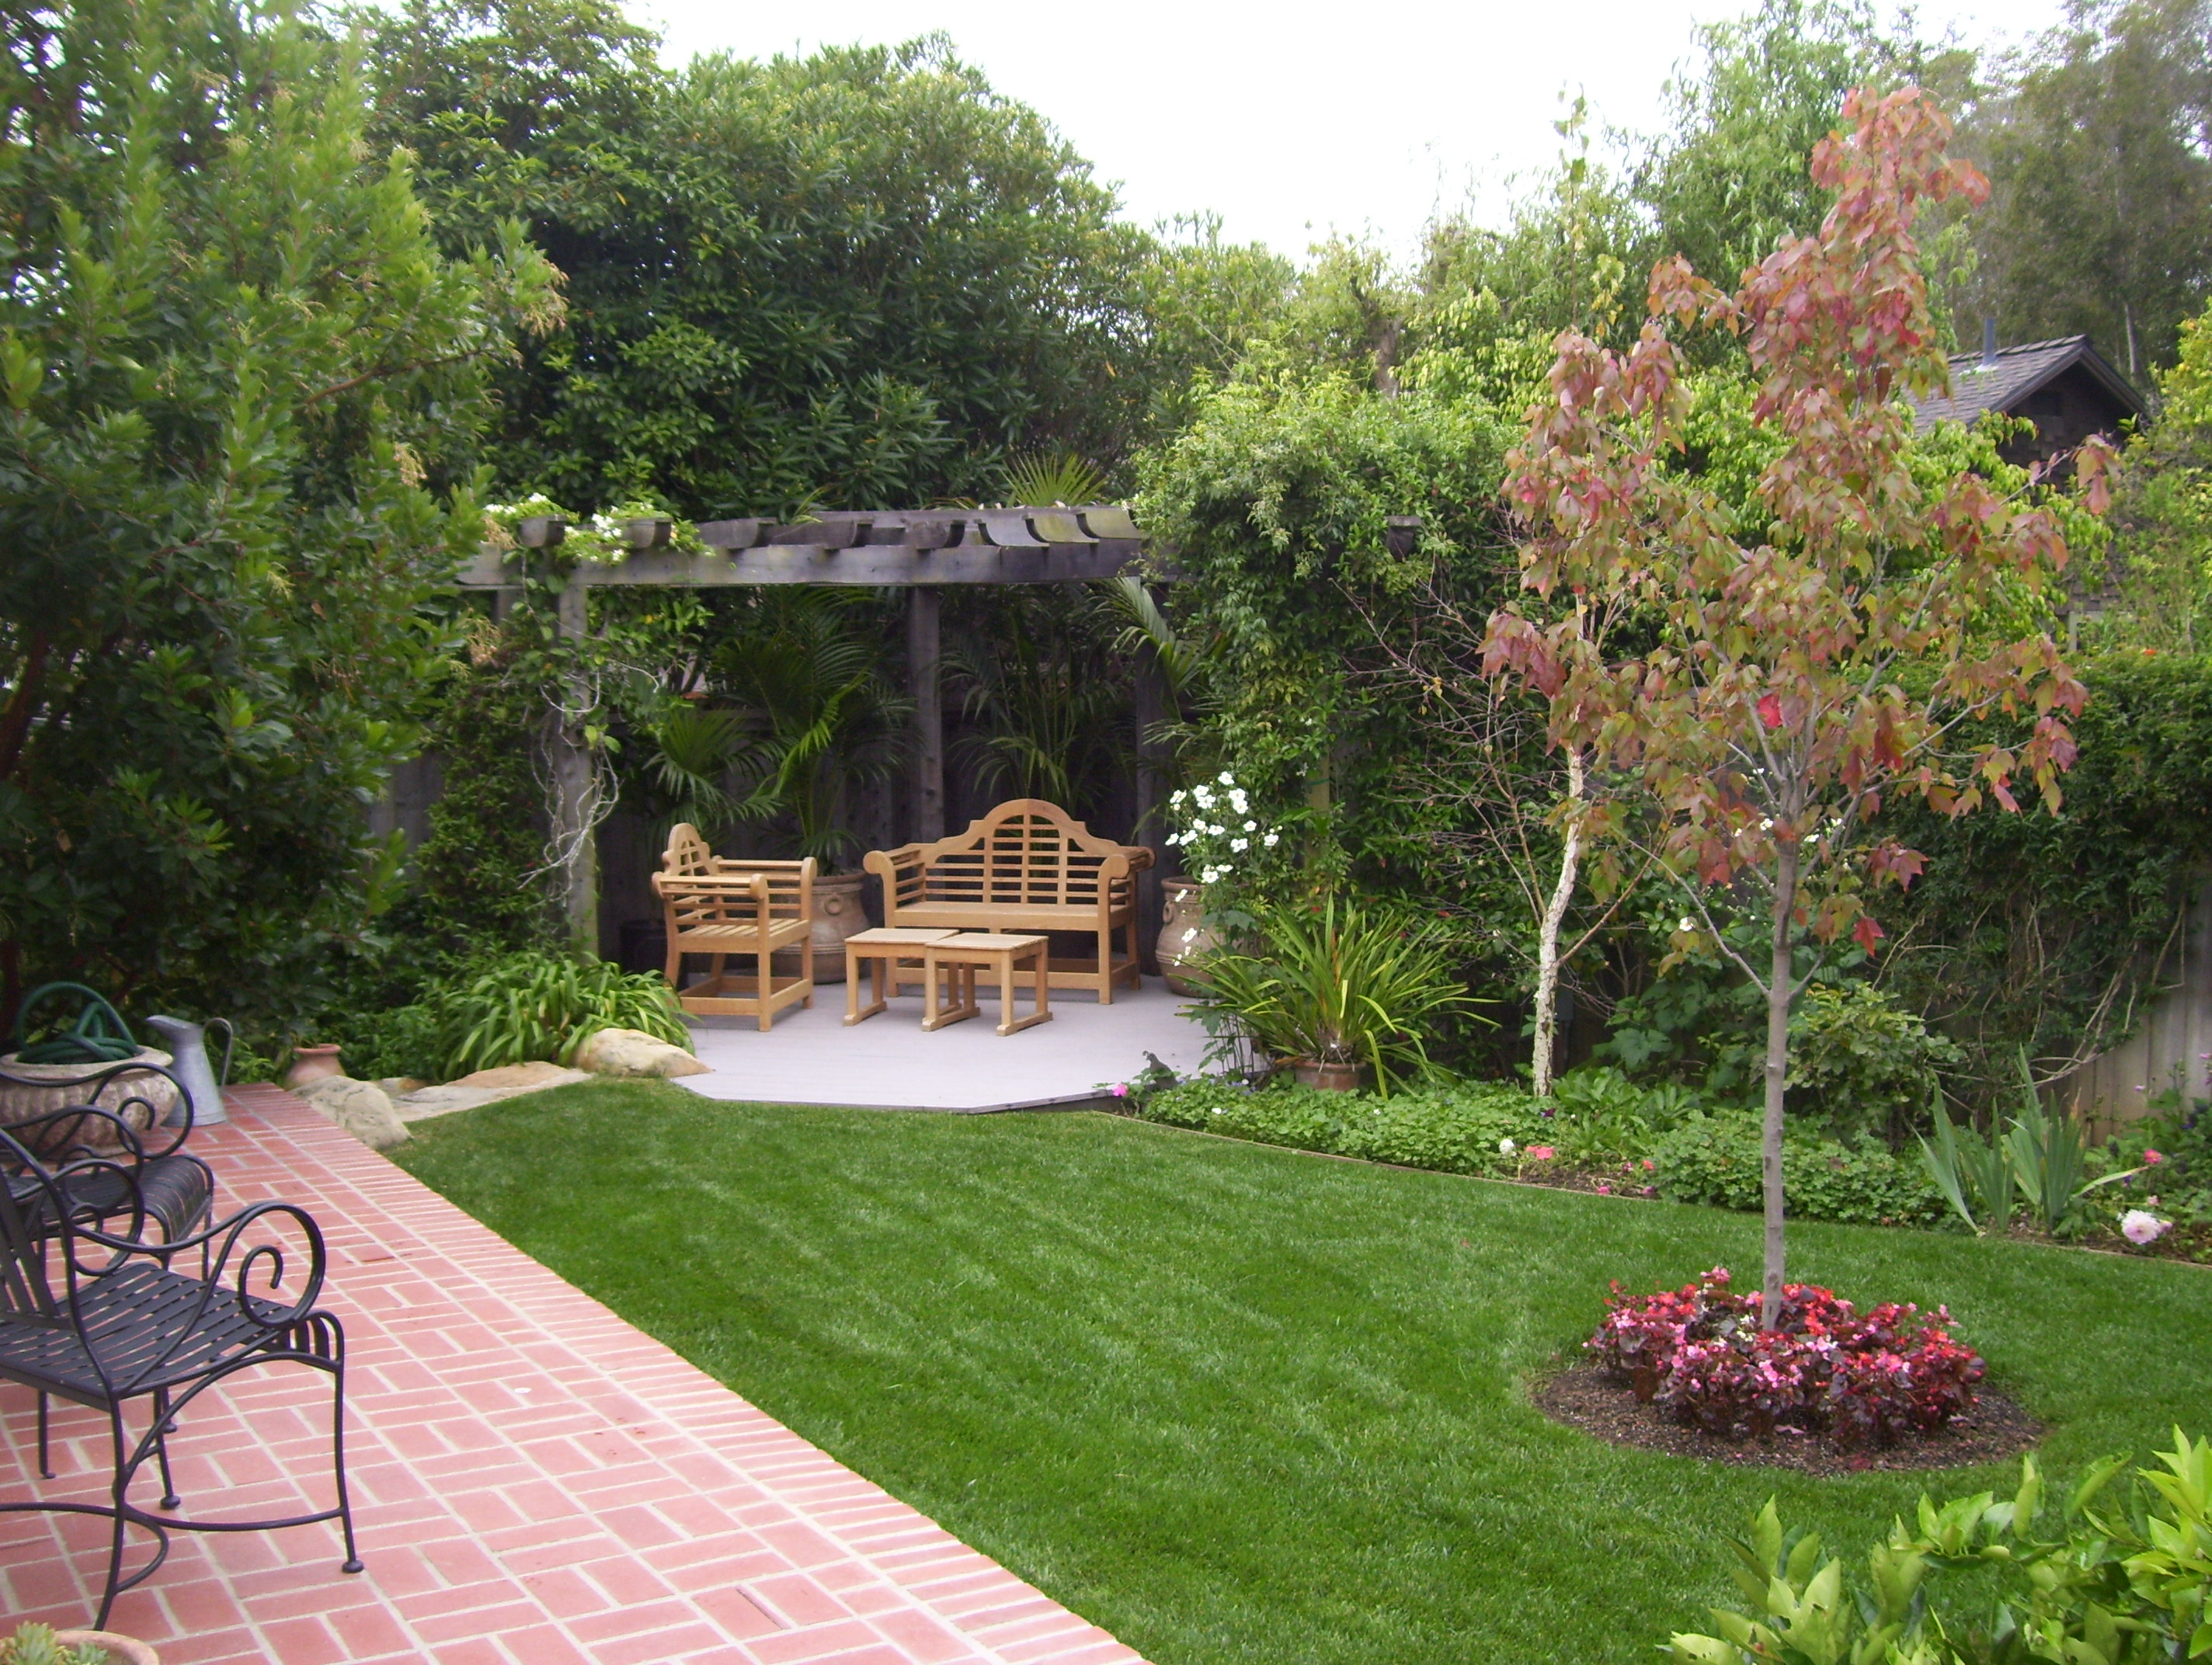 Backyard landscaping ideas santa barbara down to earth for Outdoor spaces landscaping